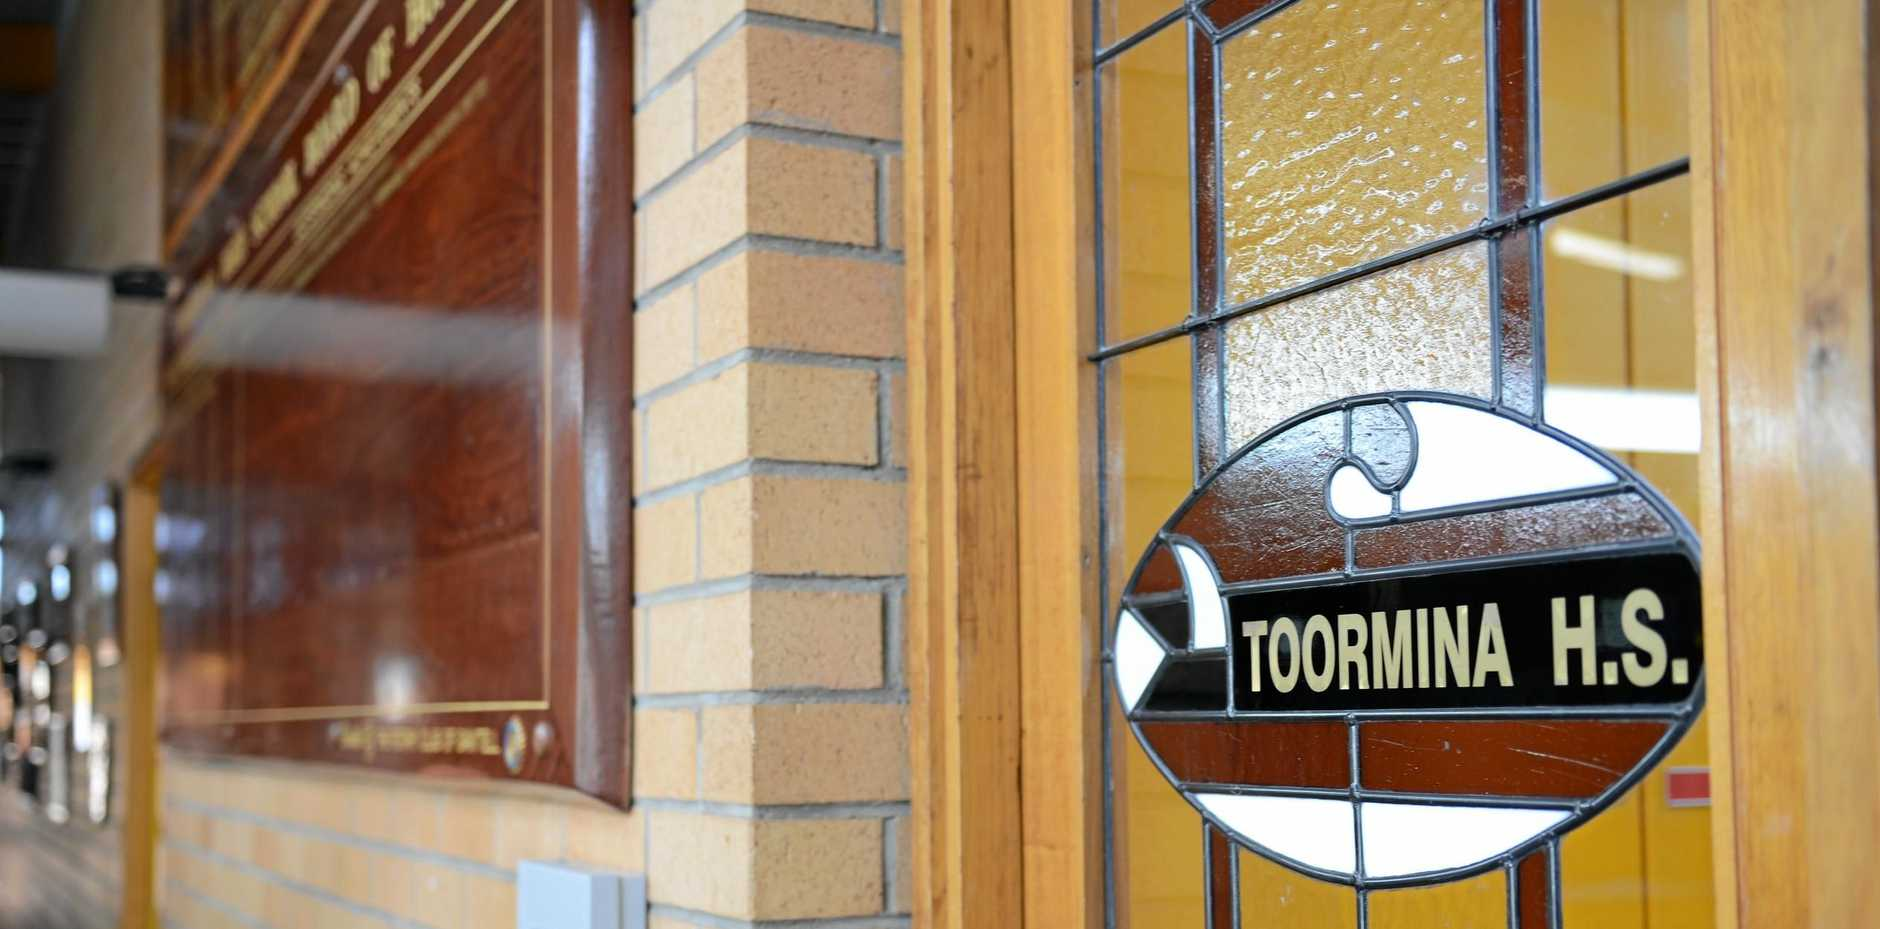 BIG COST: A NSW Department of Education audit revealed Toormina High School has a maintenance backlog of more than $2 million.